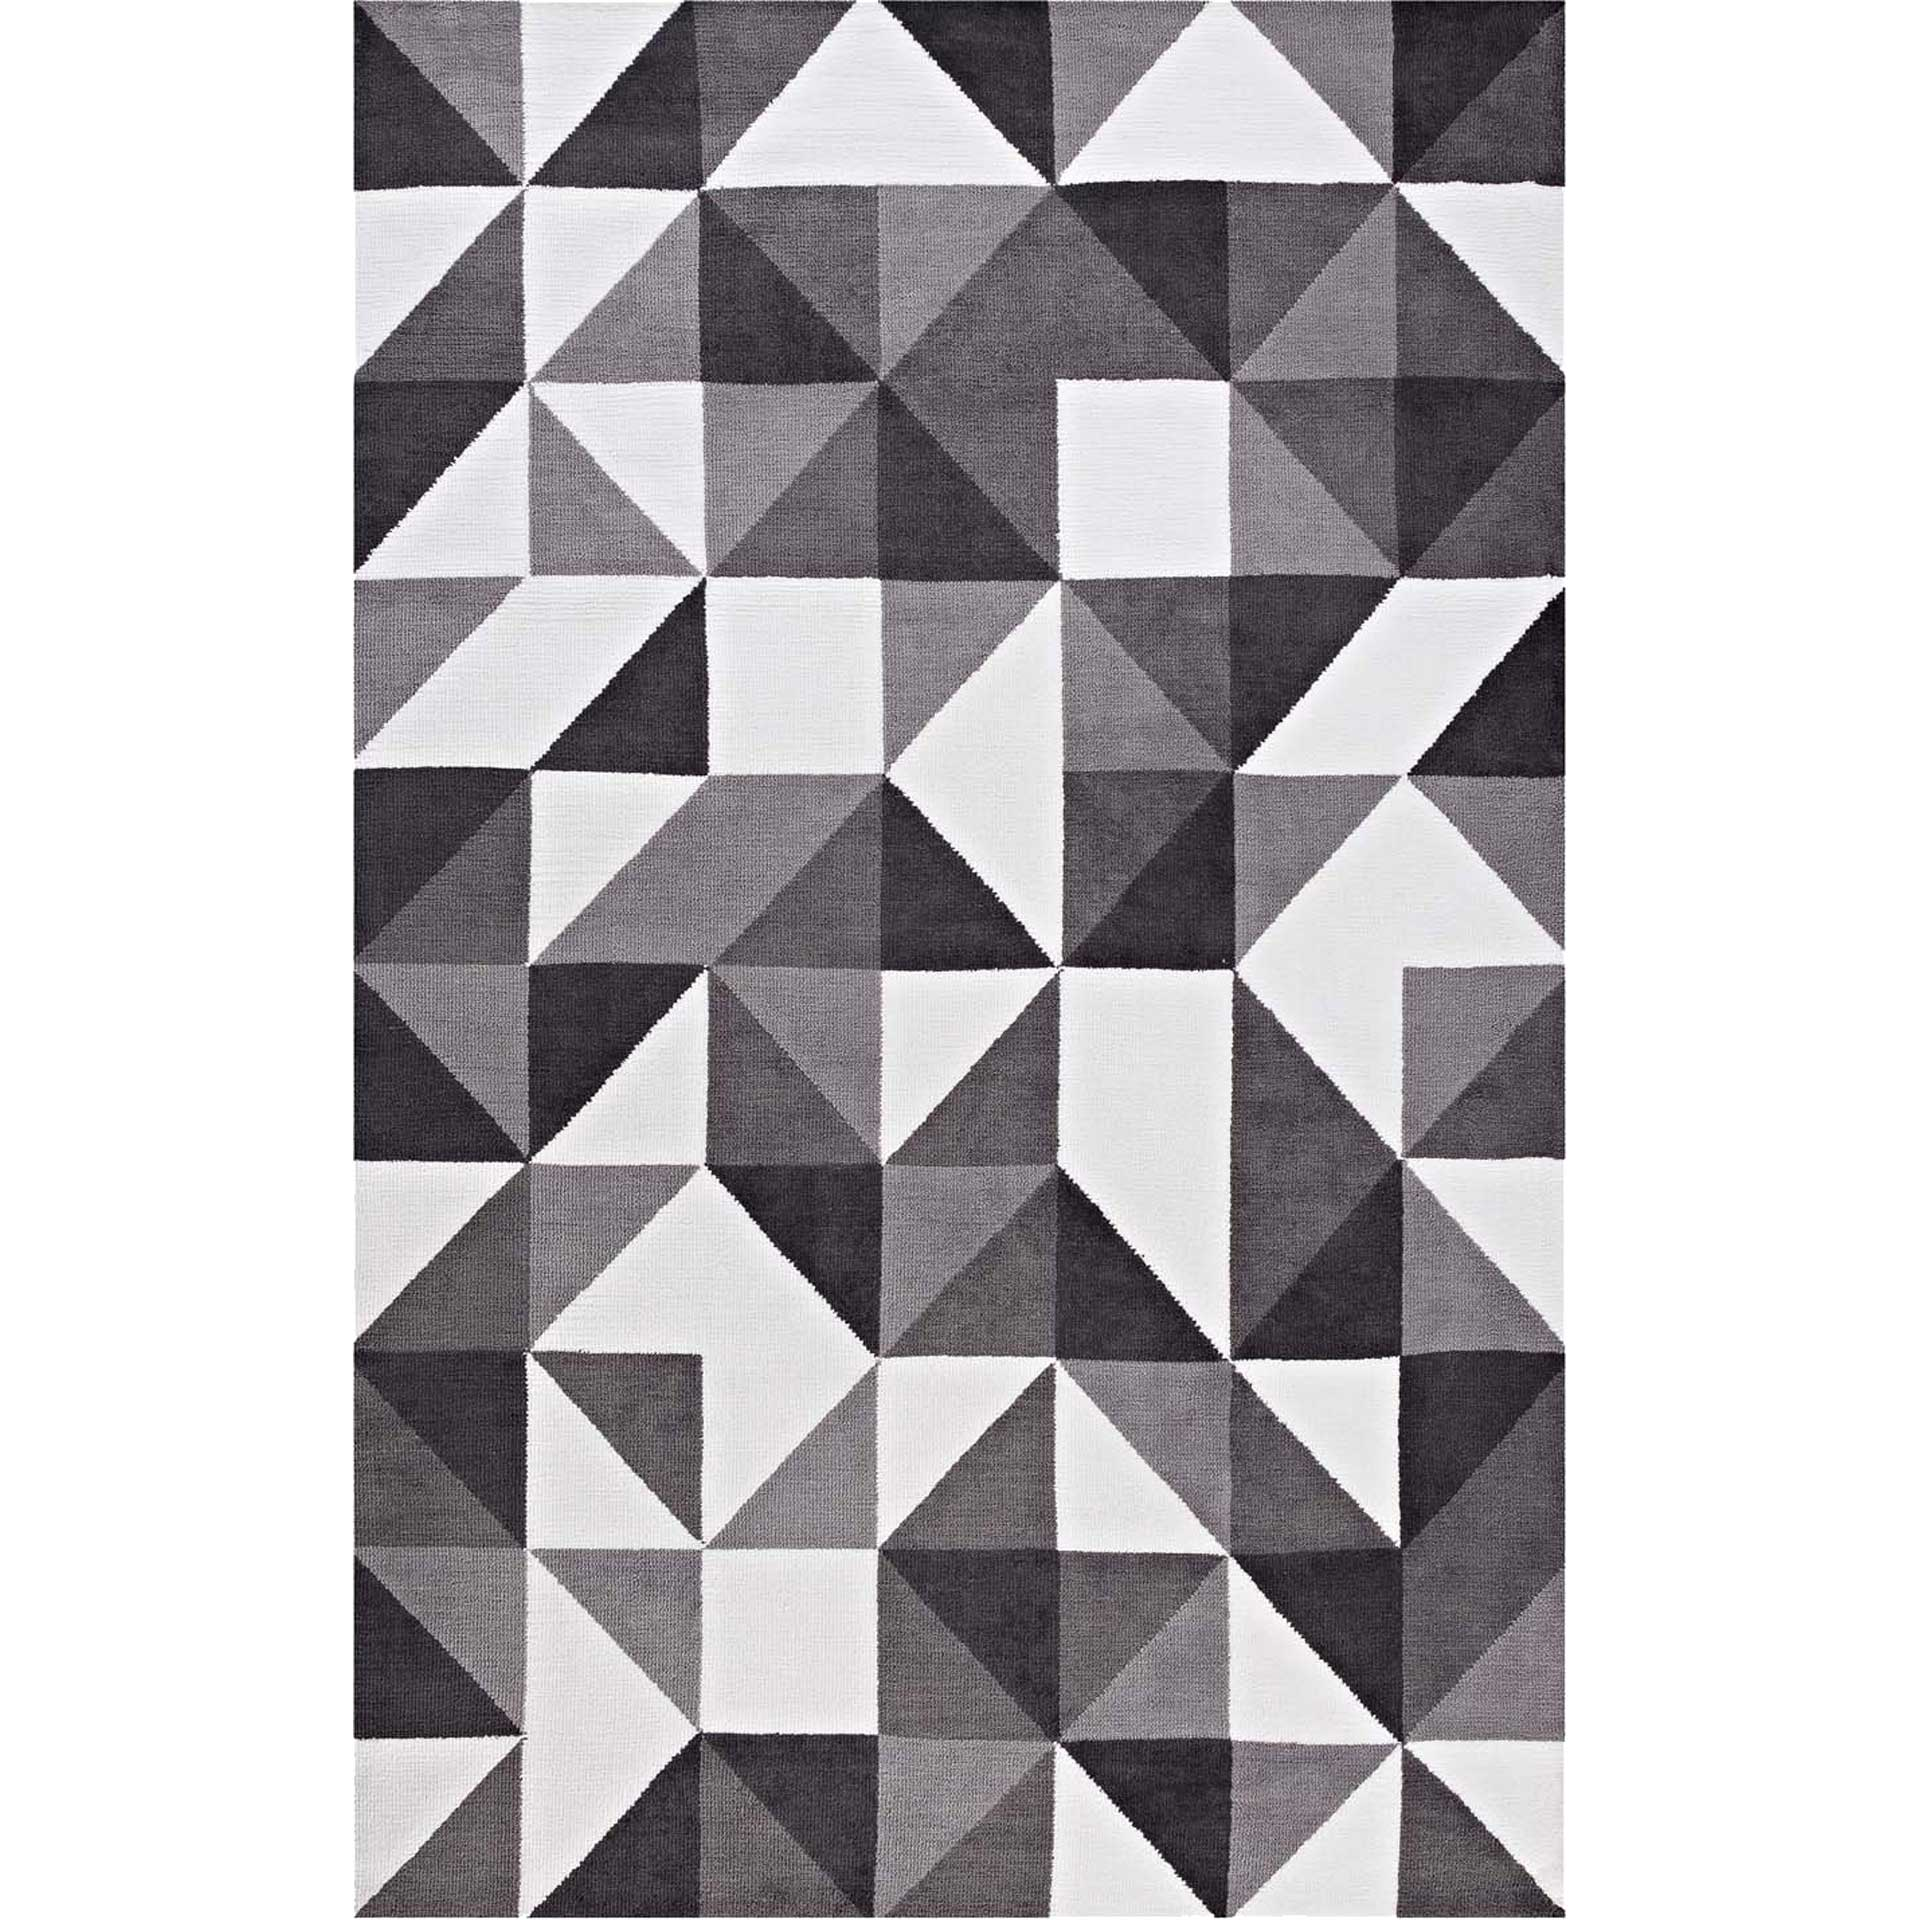 Kayes Mosaic Area Rug Black/Gray/White